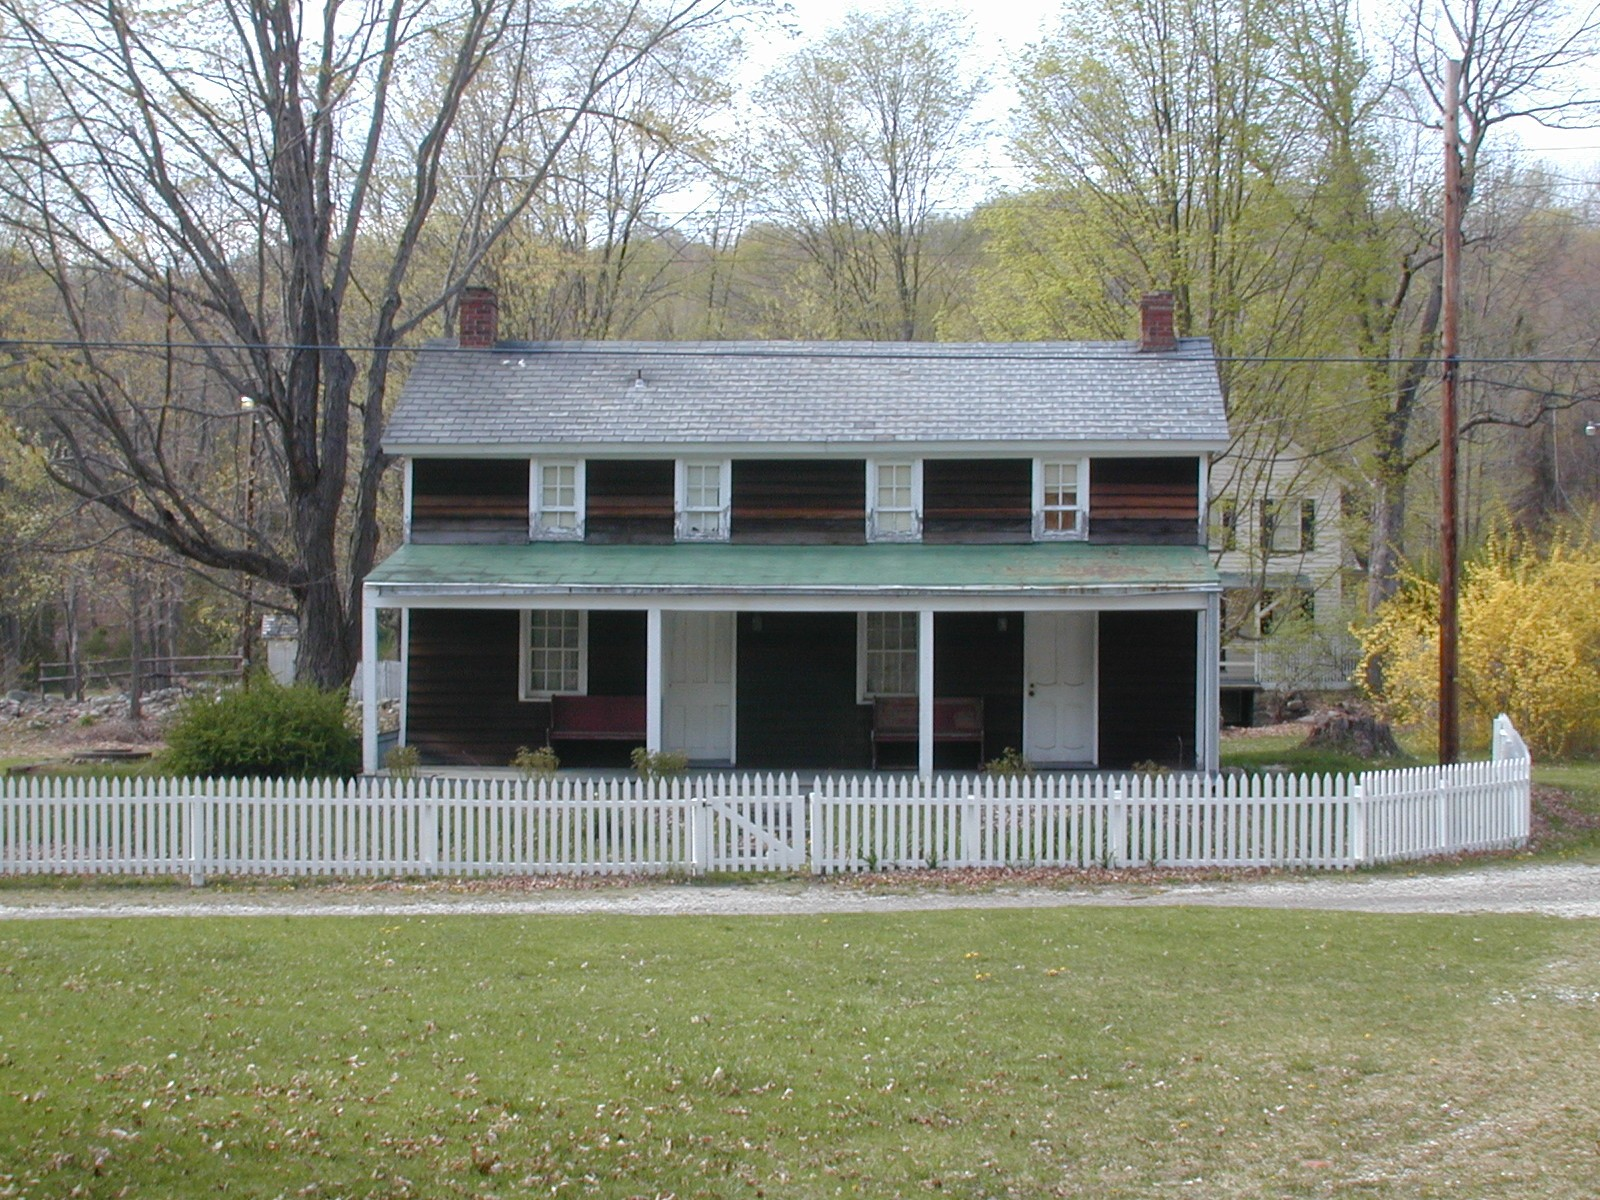 Preserved home at Millbrook